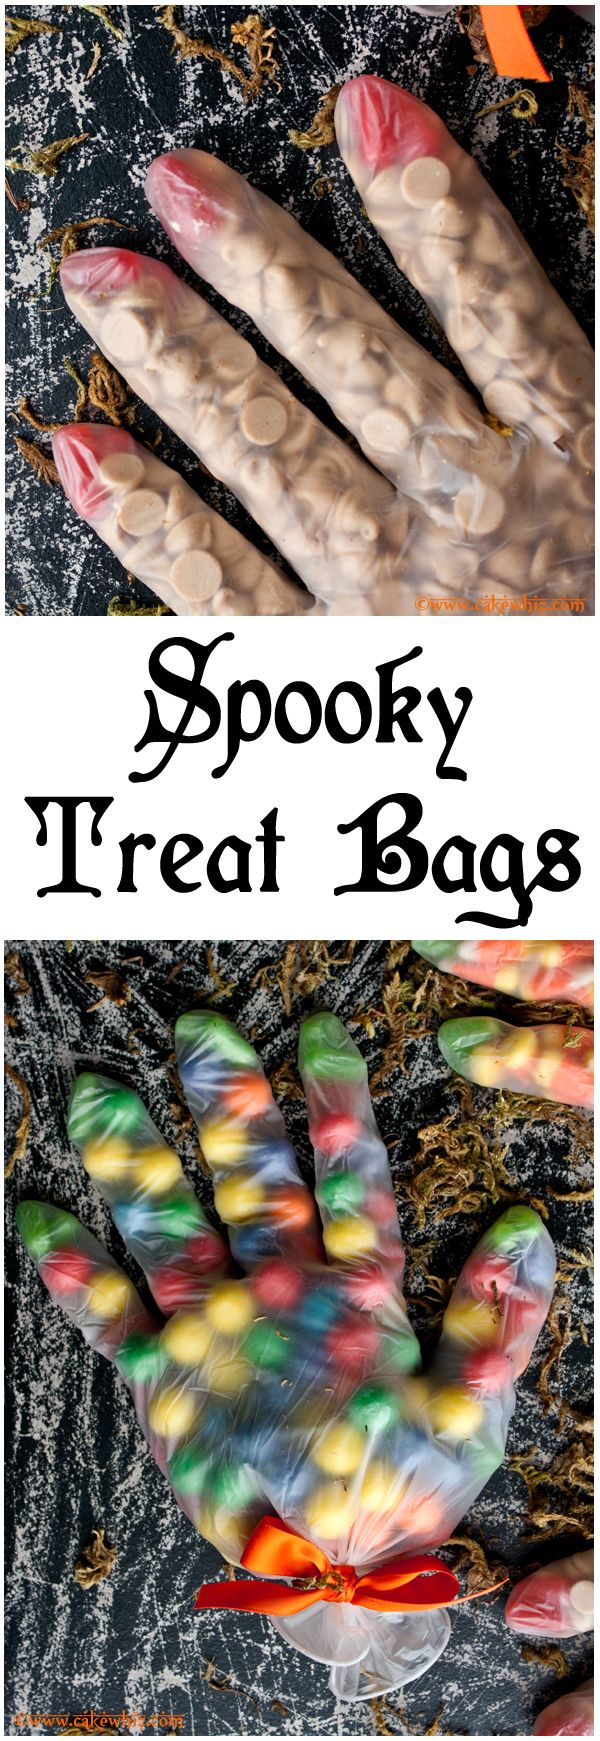 Fun HALLOWEEN GLOVE TREAT BAGS. Fill them with candy corn or gumballs or whatever you like. So easy to make! From cakewhiz.com